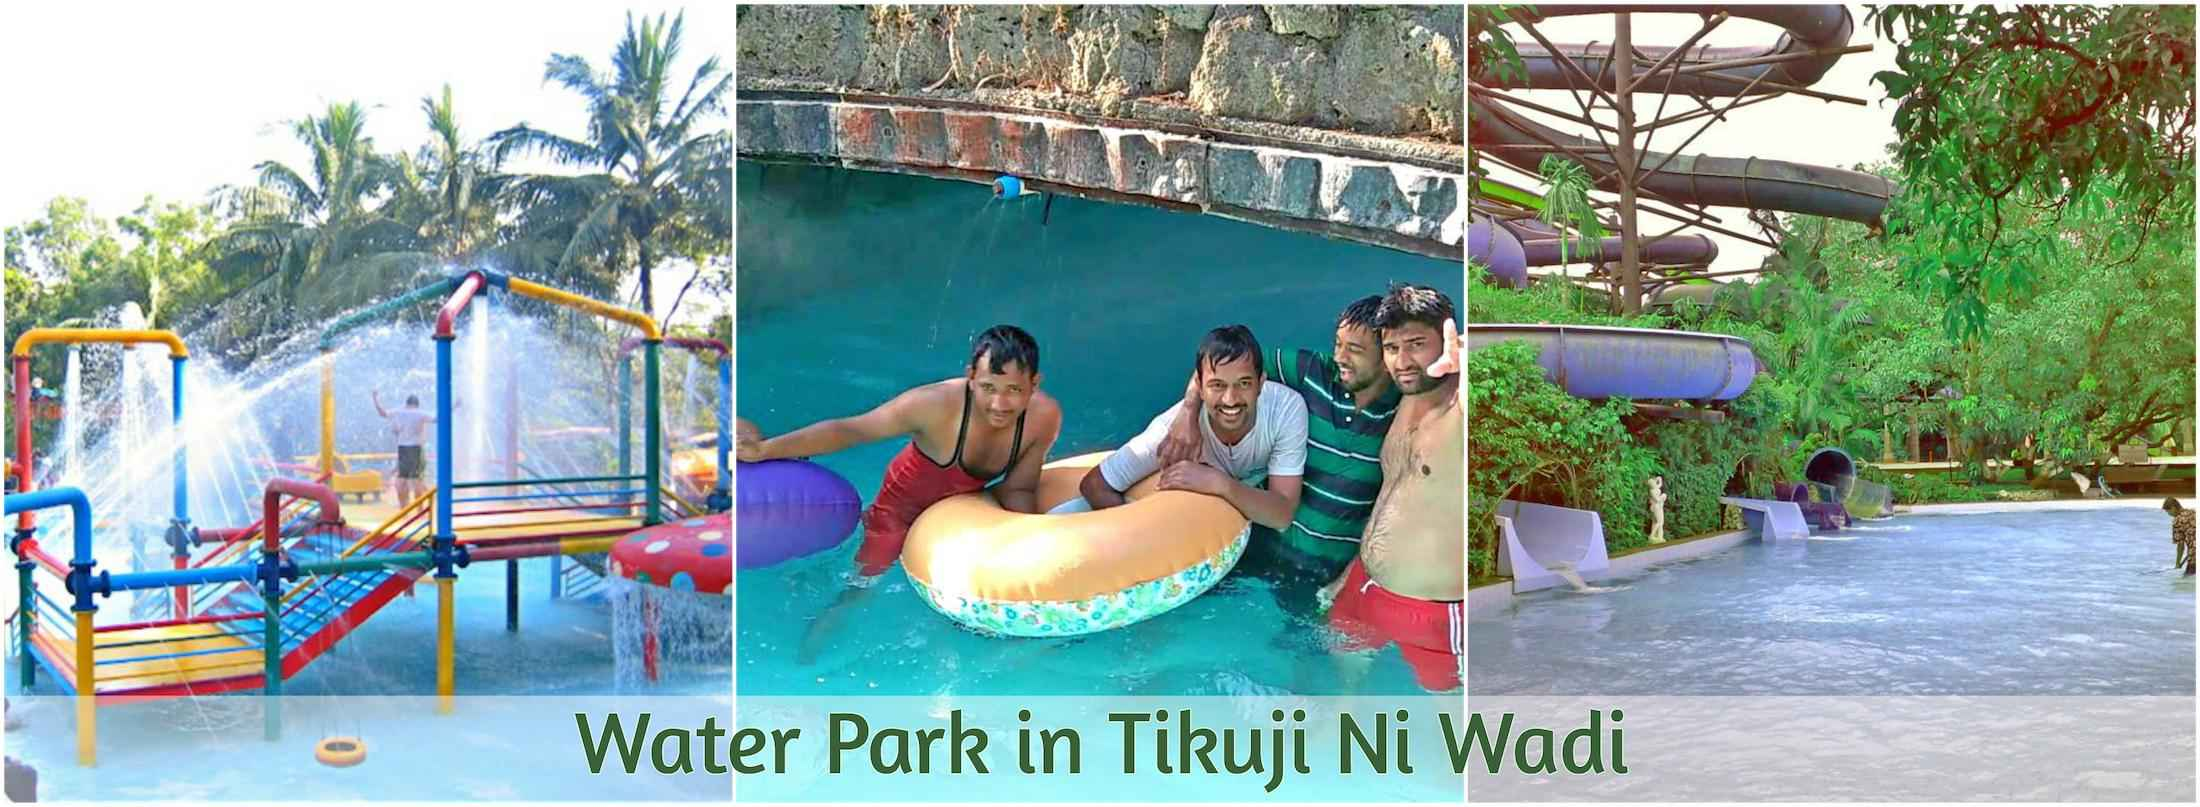 Water-Park-at-tiku-ji-ni-wadi.jpg